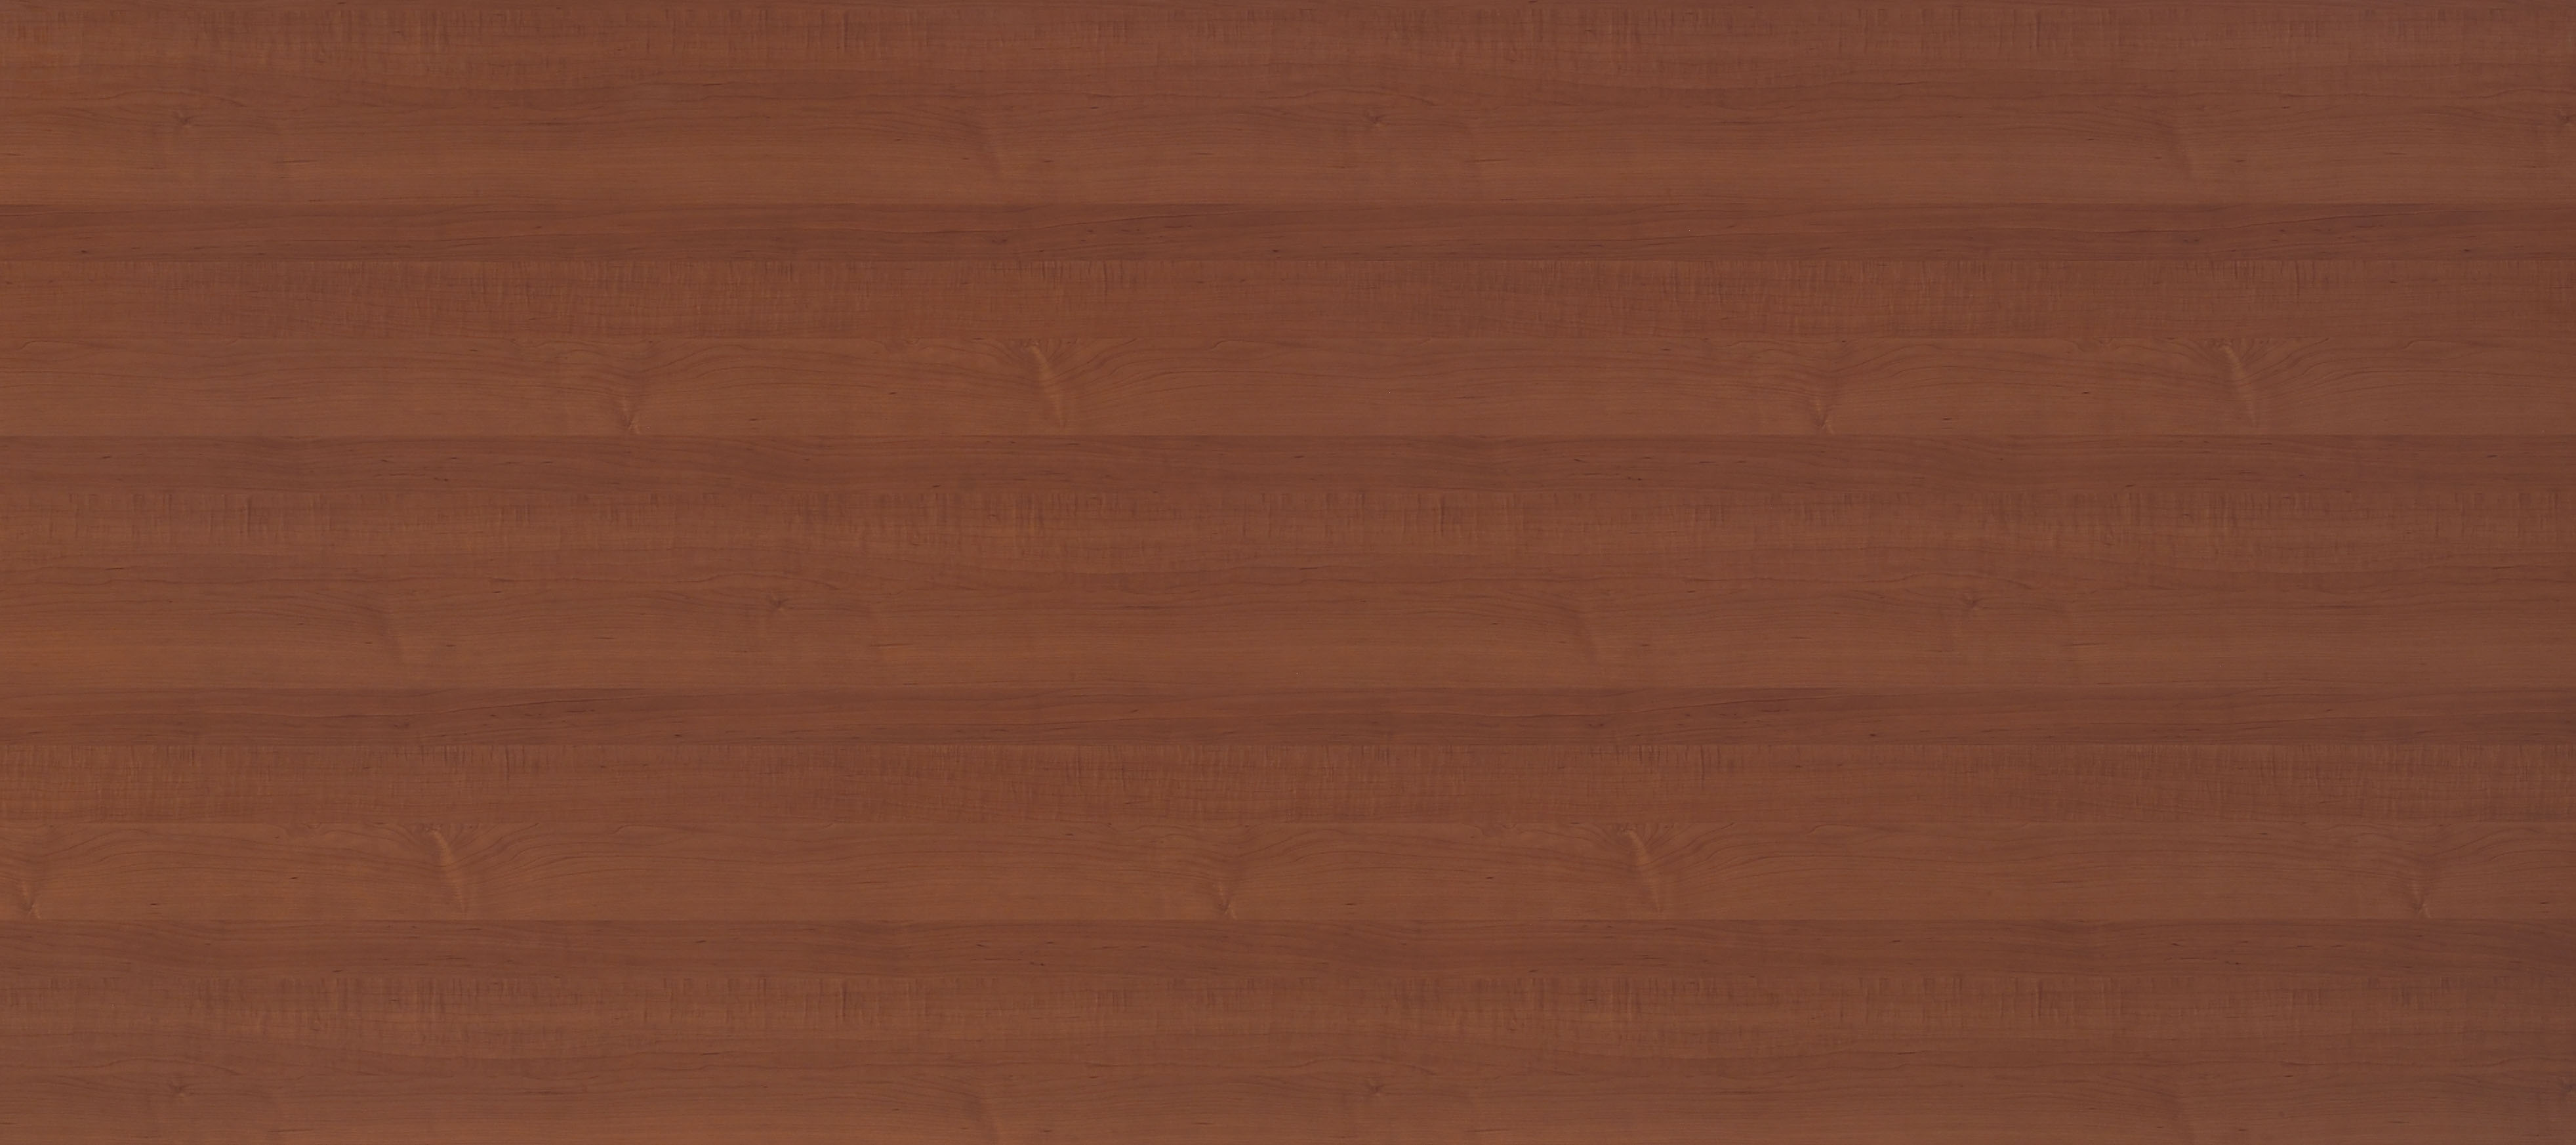 Texture wood, free download, photo, download wood texture, background